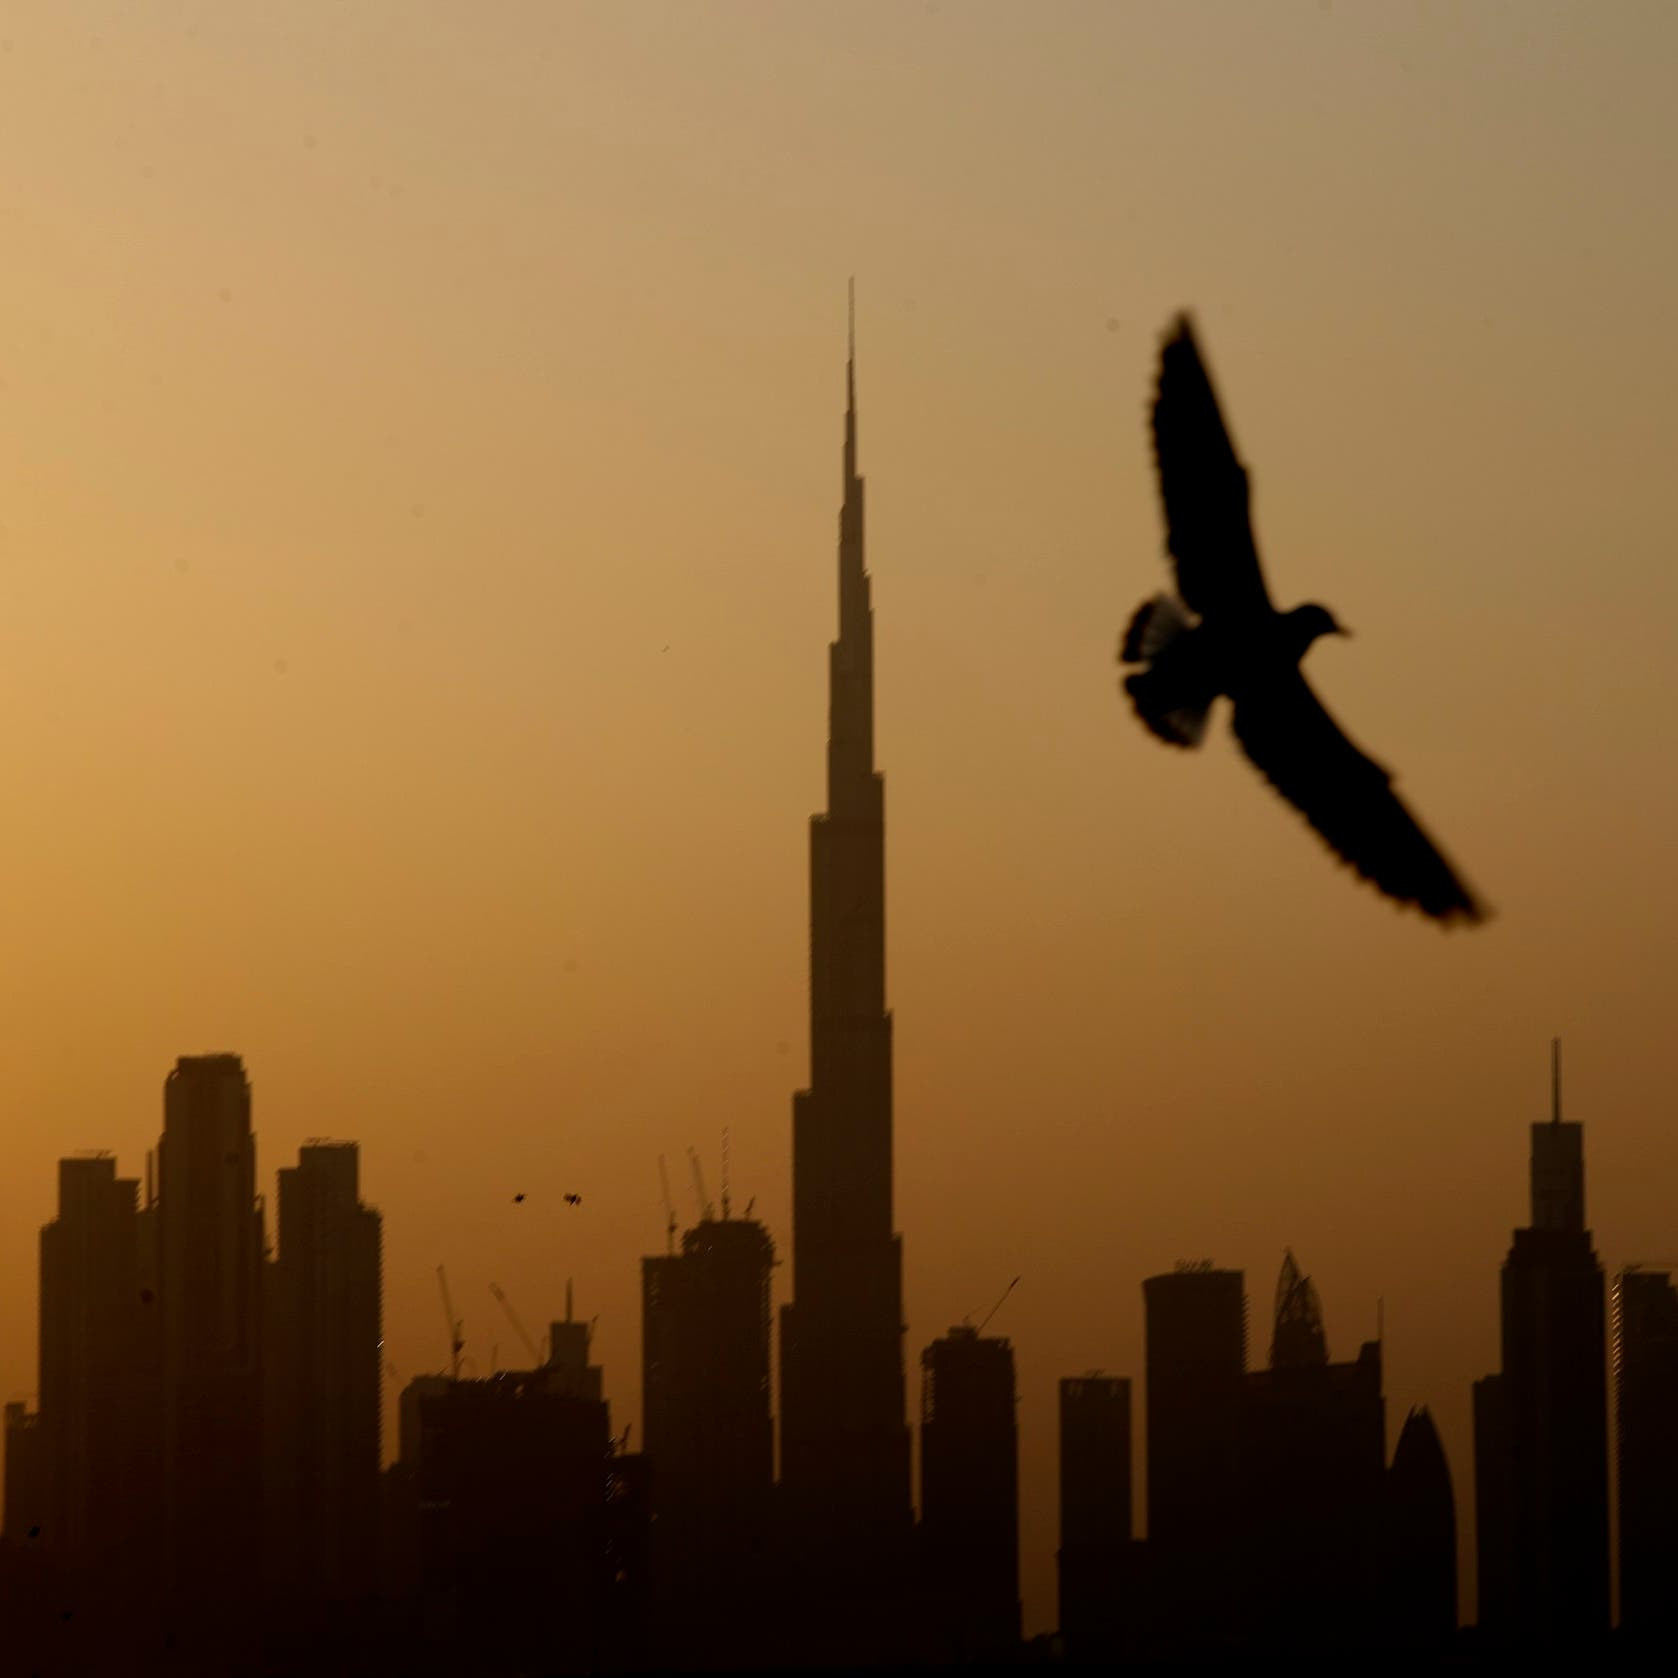 Dubai to increase tourism capacity by 134 percent in 2040